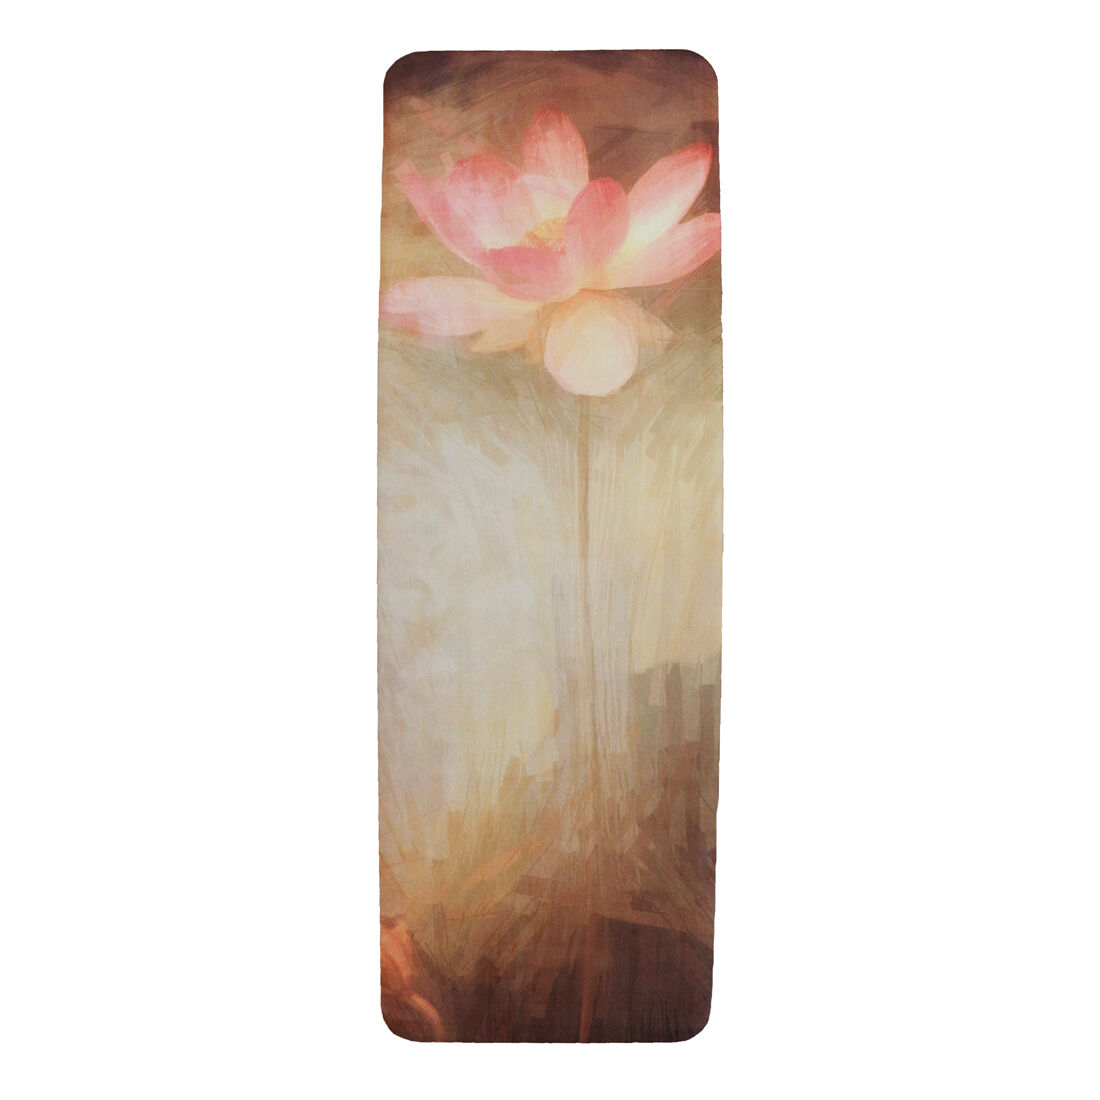 Premium Yoga Mat – Striking Striking Striking Lotus, Eco Friendly b49d1e